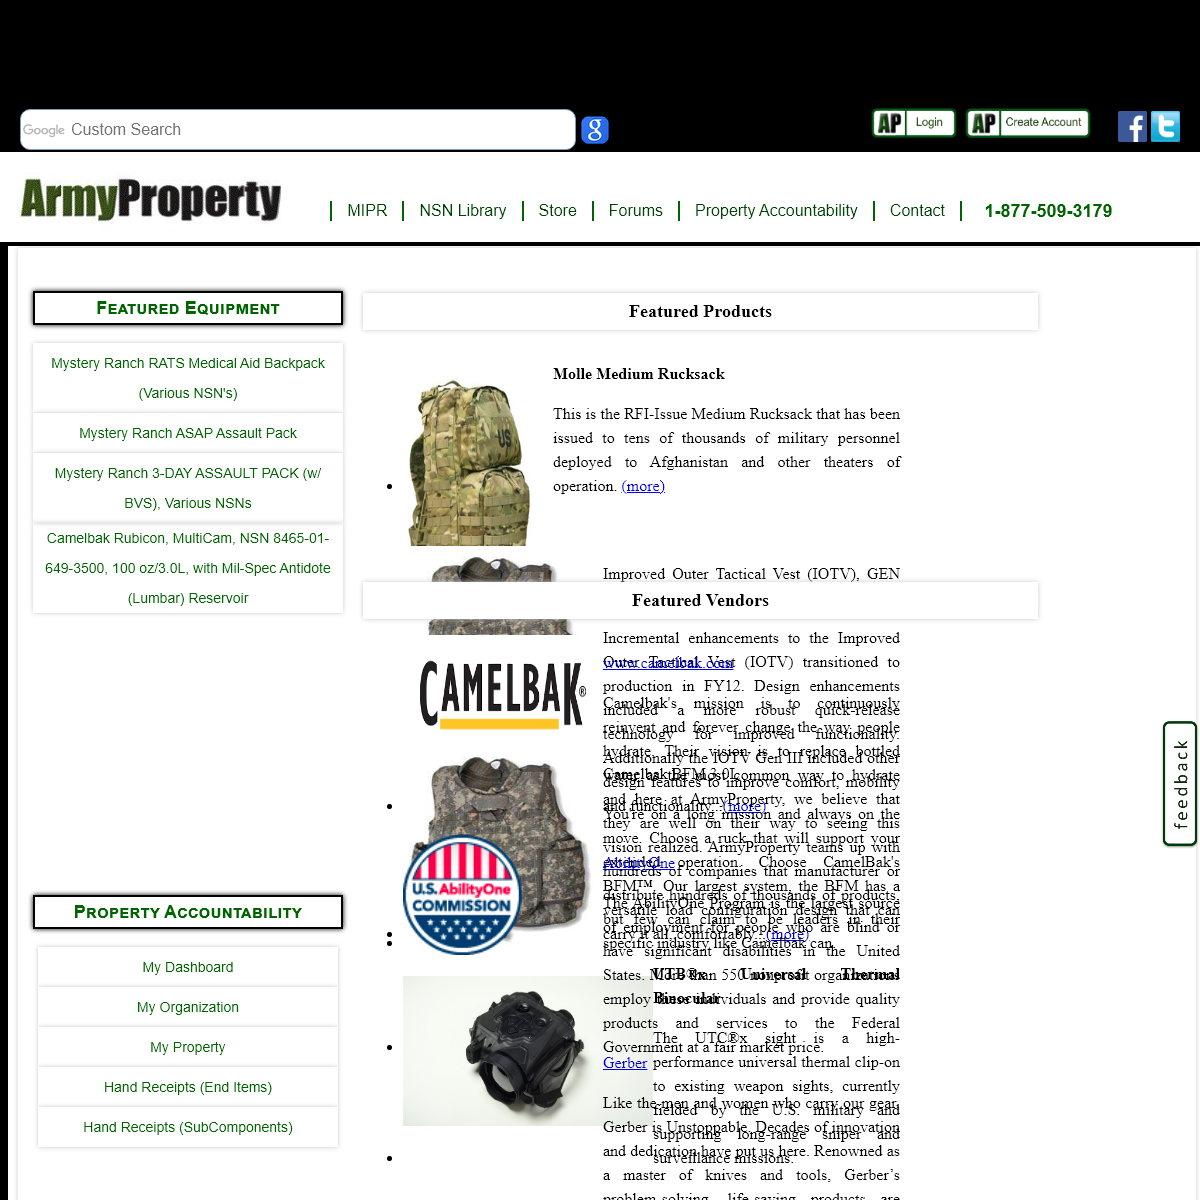 Welcome to ArmyProperty.com!